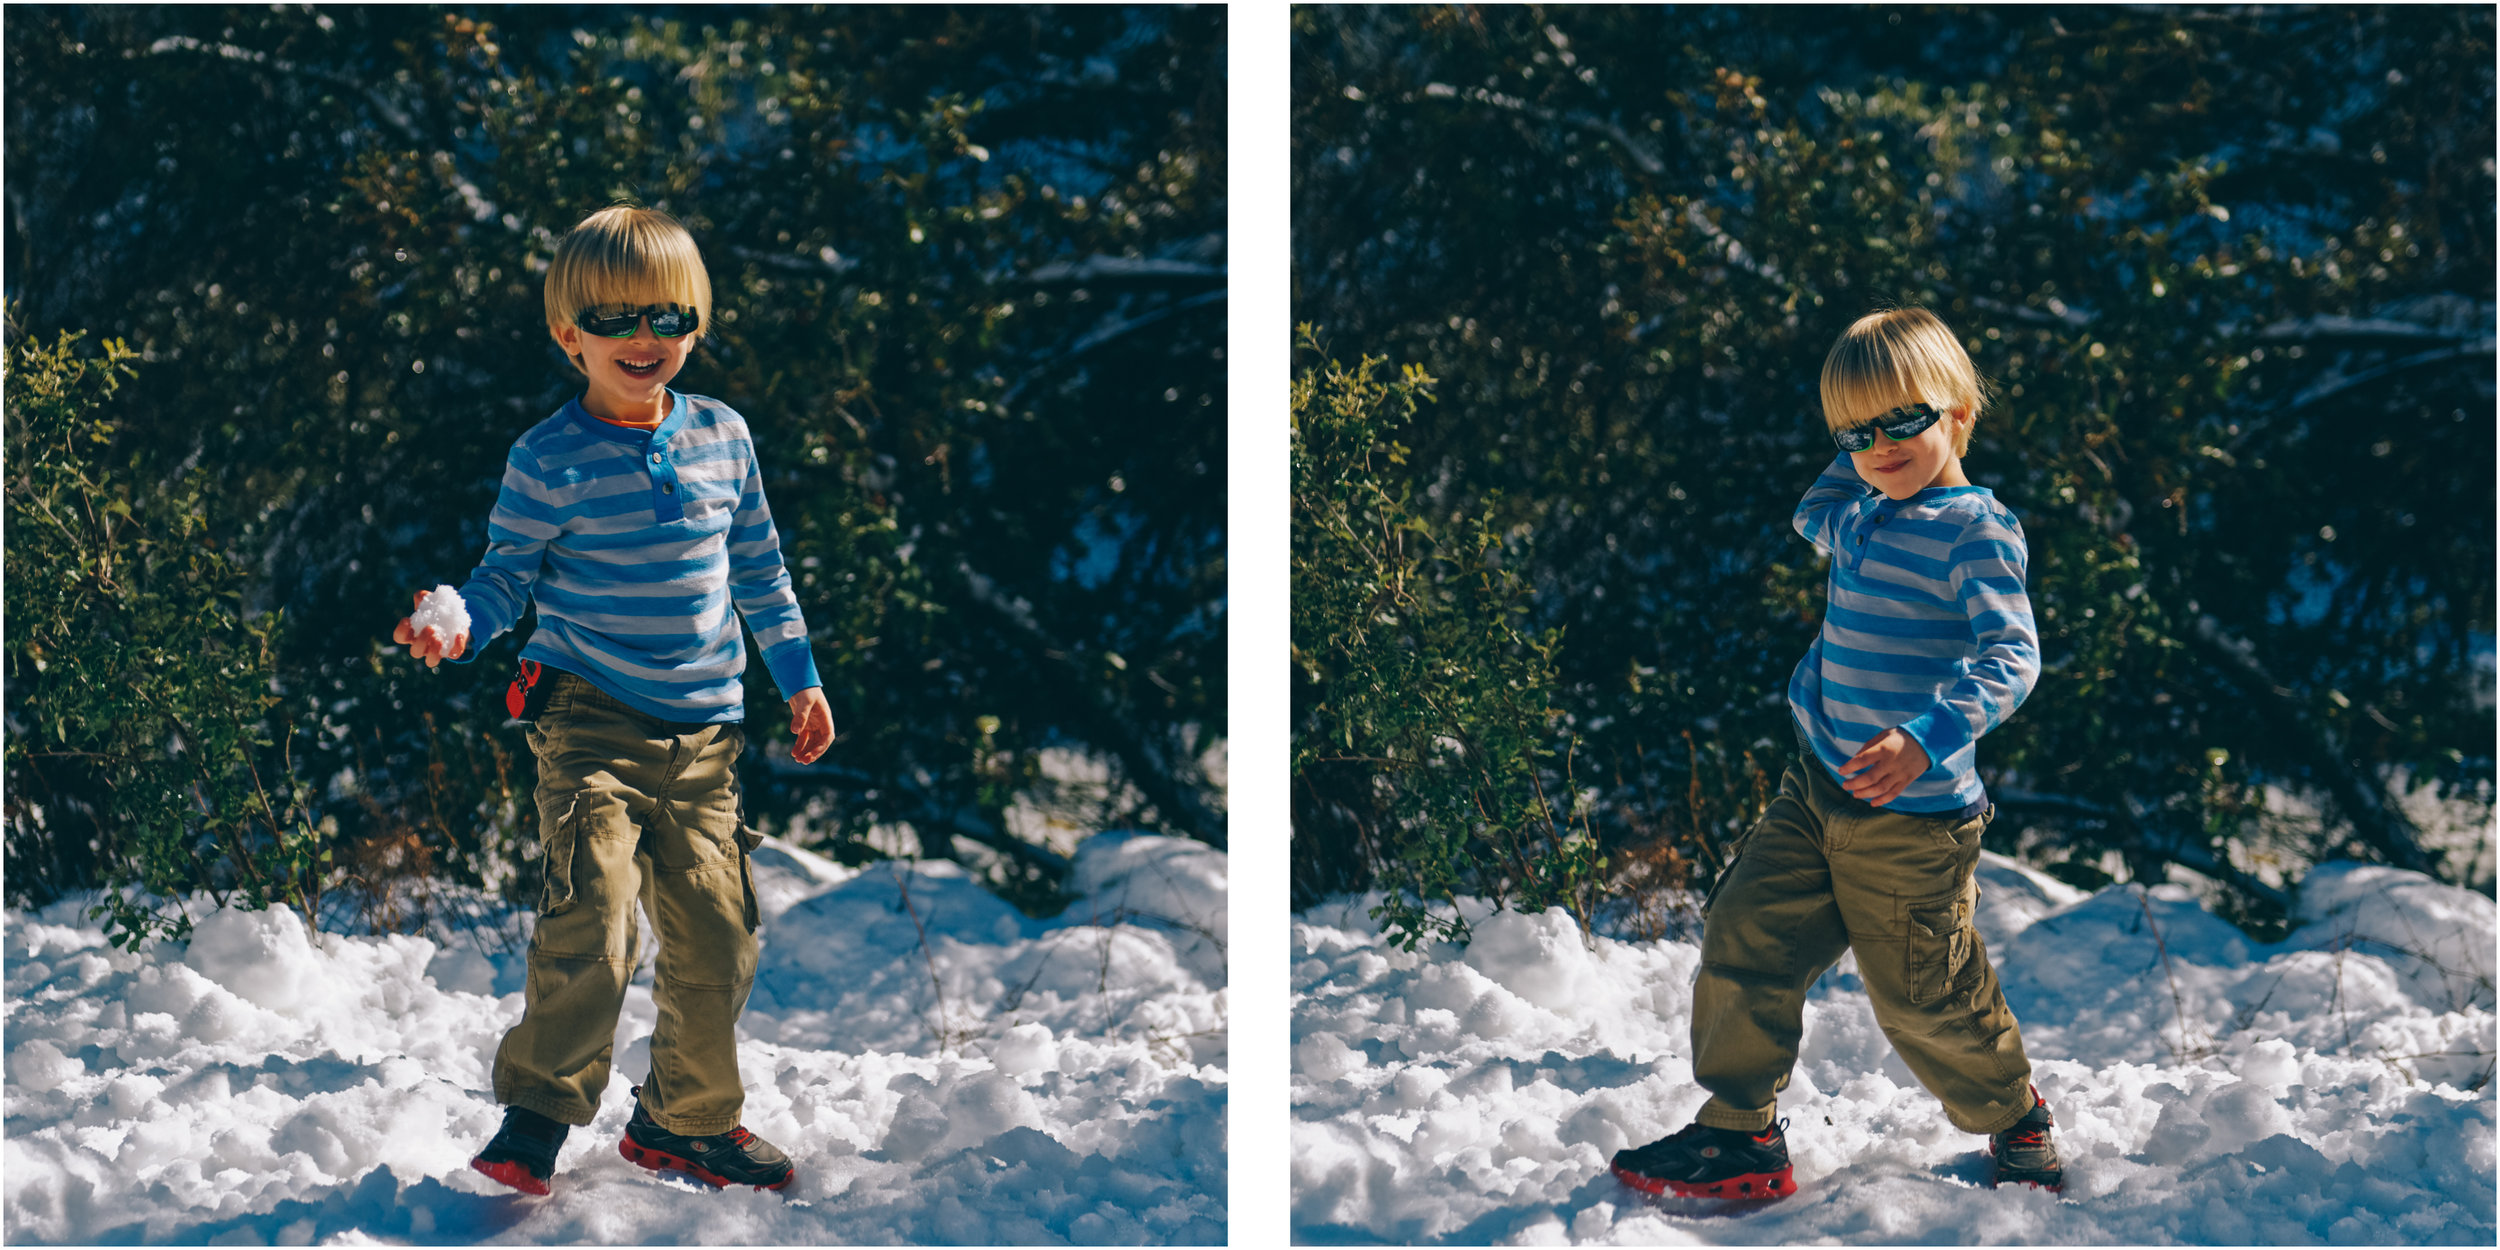 These little Arizona boys haven't seen snow many times in their lives. It was a real treat to see their enthousiasm!